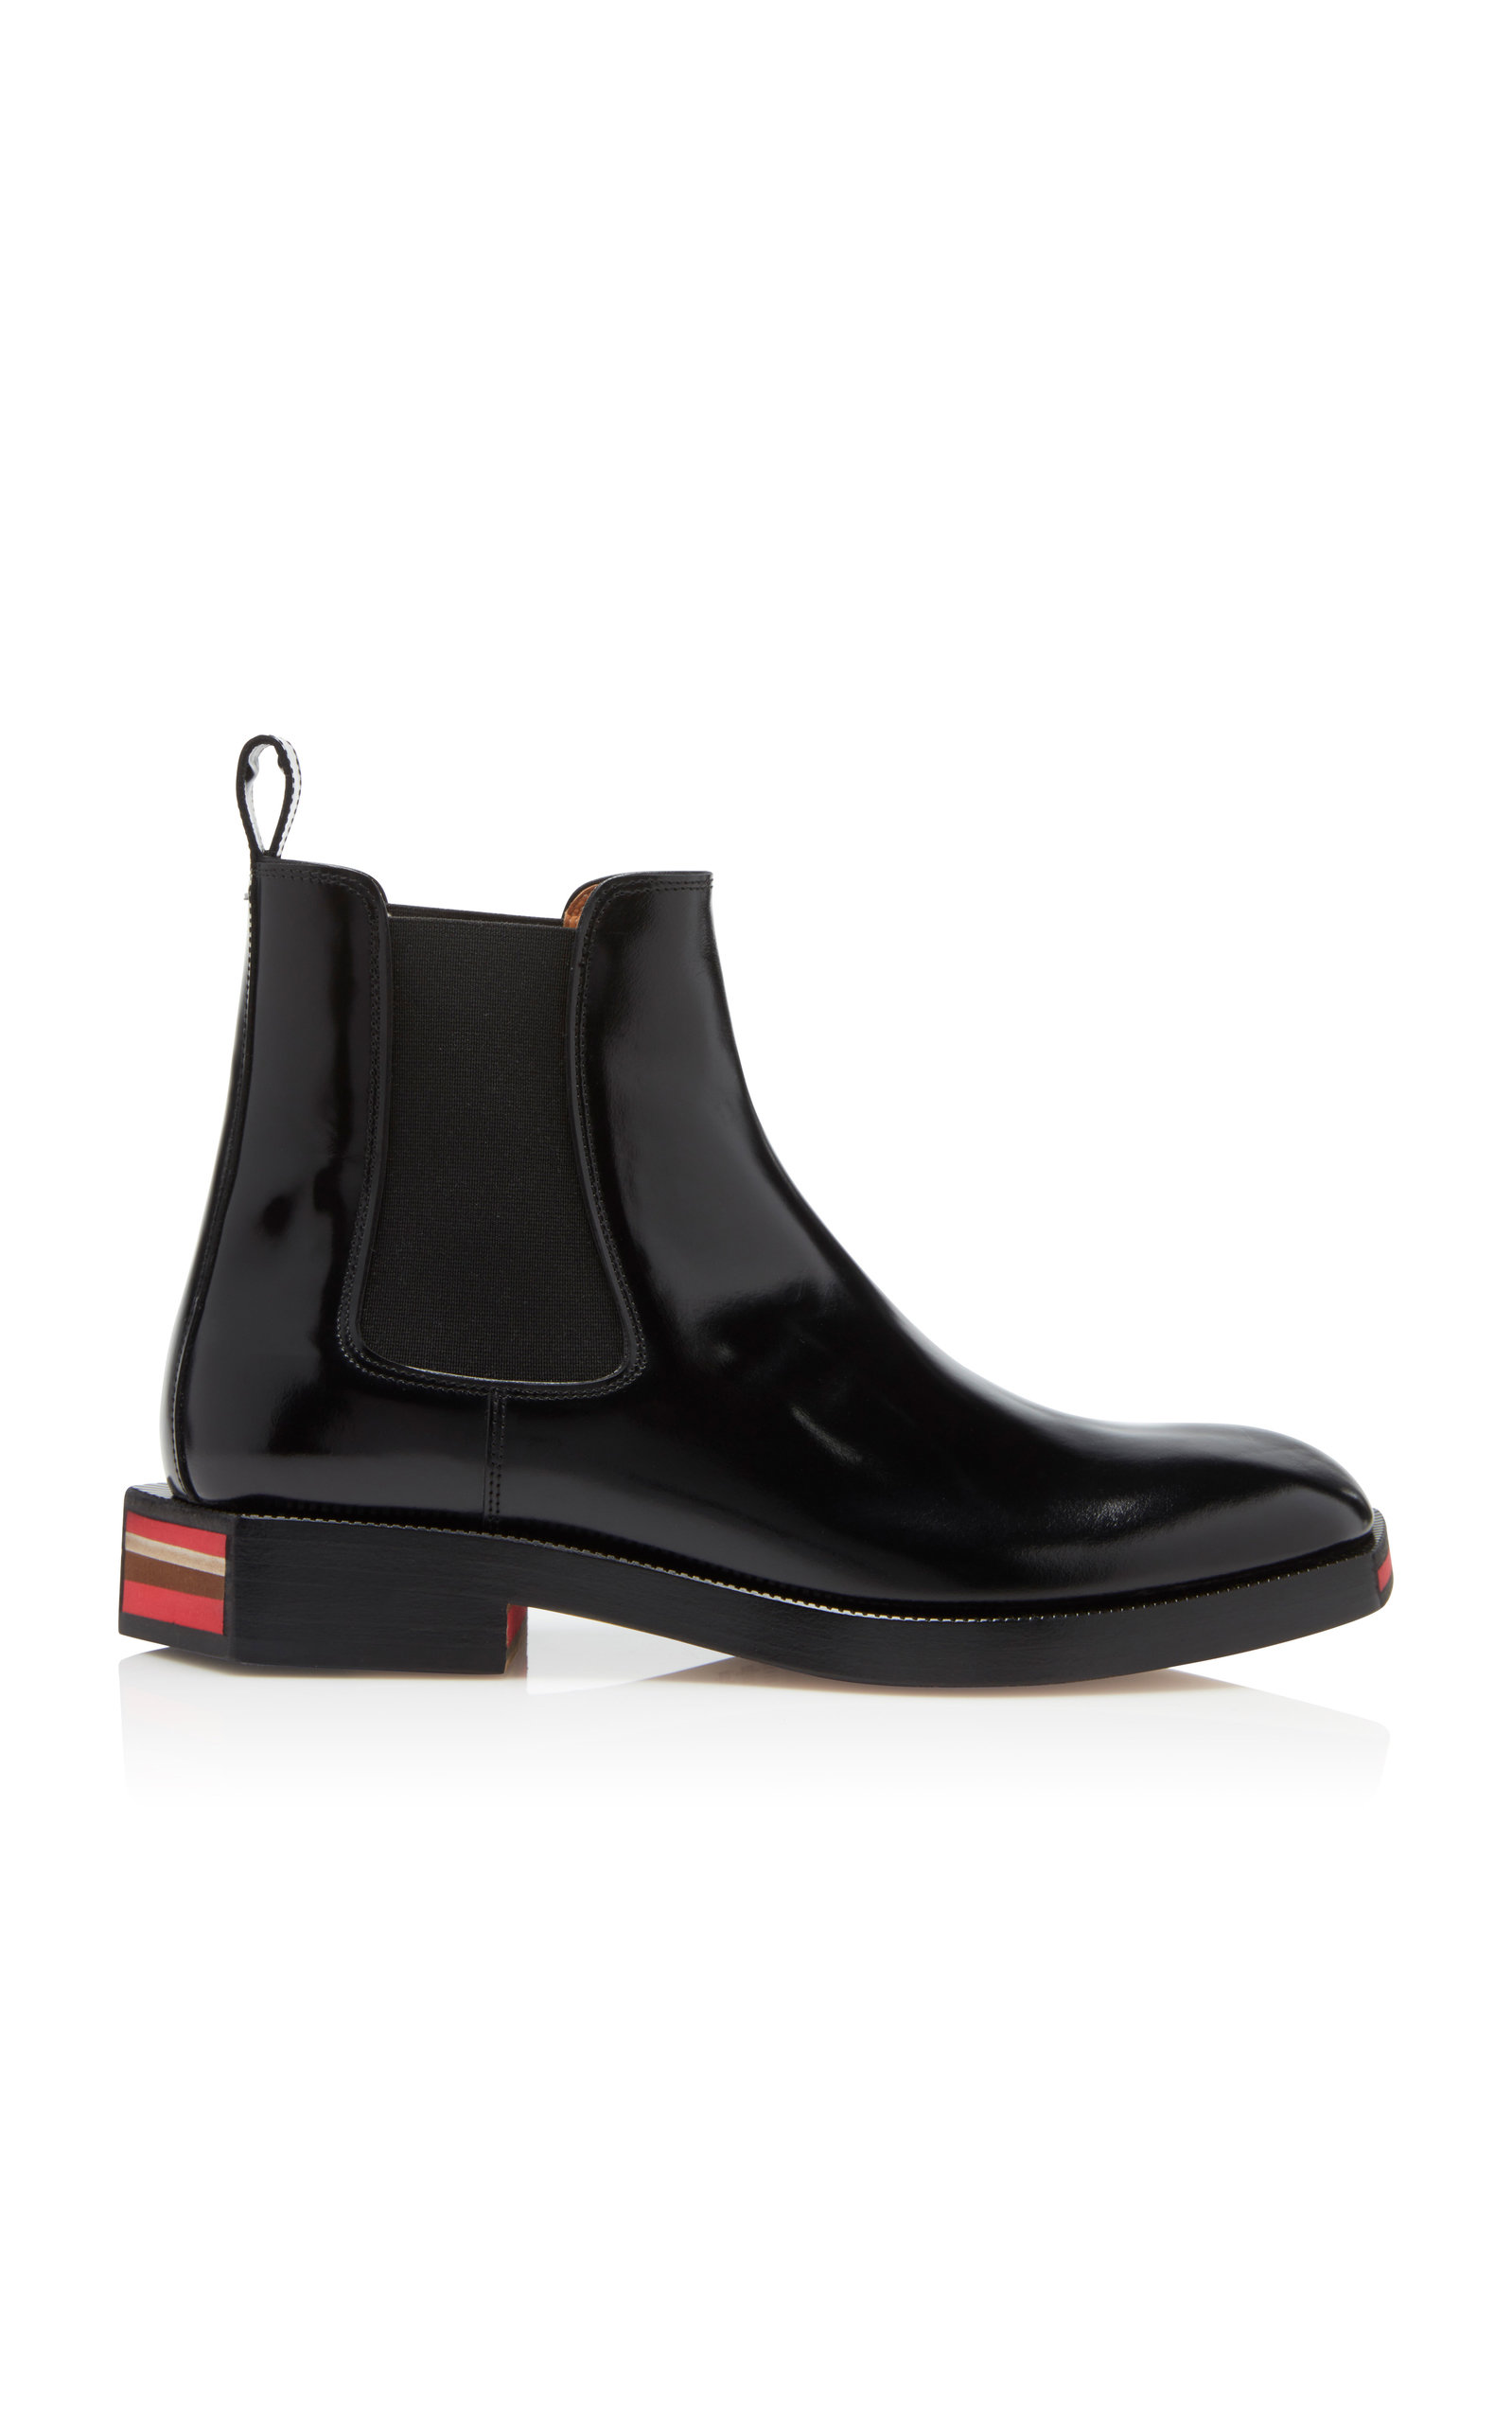 huge discount b6af8 02e17 Stivaletto Geometric Patent Ankle Boots